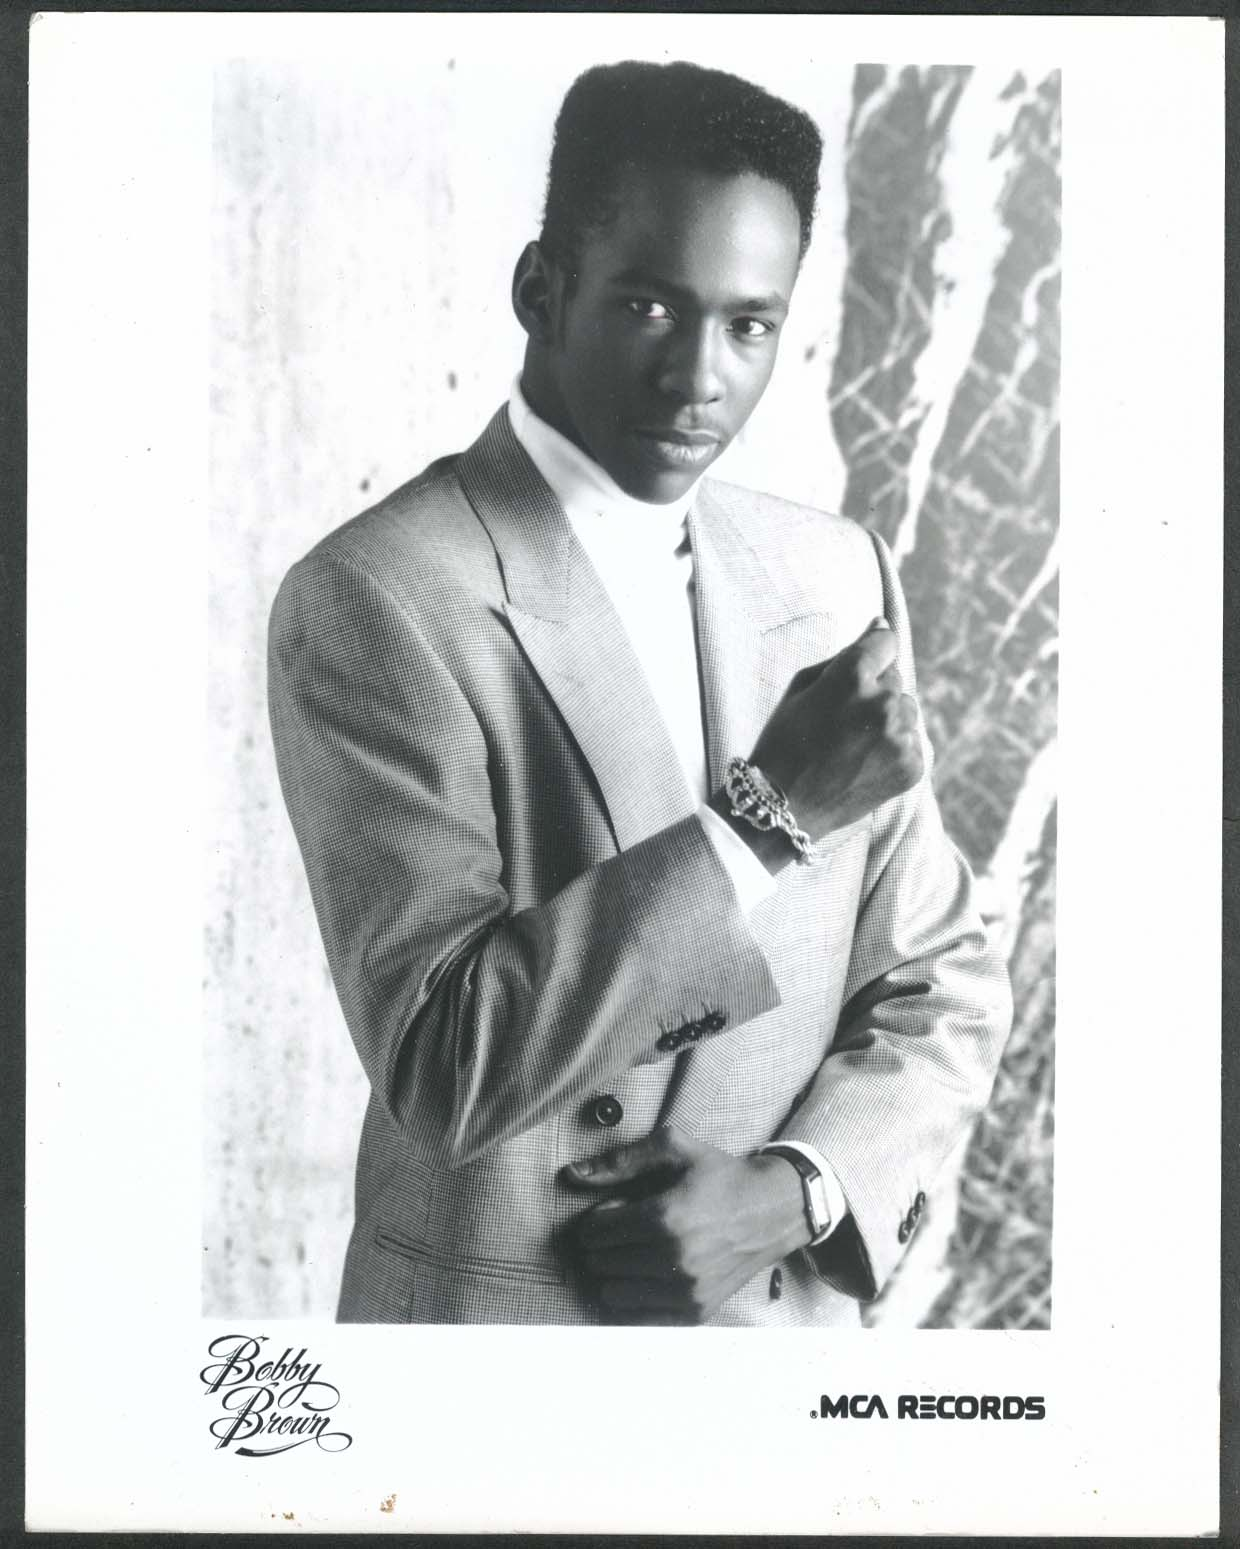 Bobby Brown MCA Records 8x10 photograph 1980s